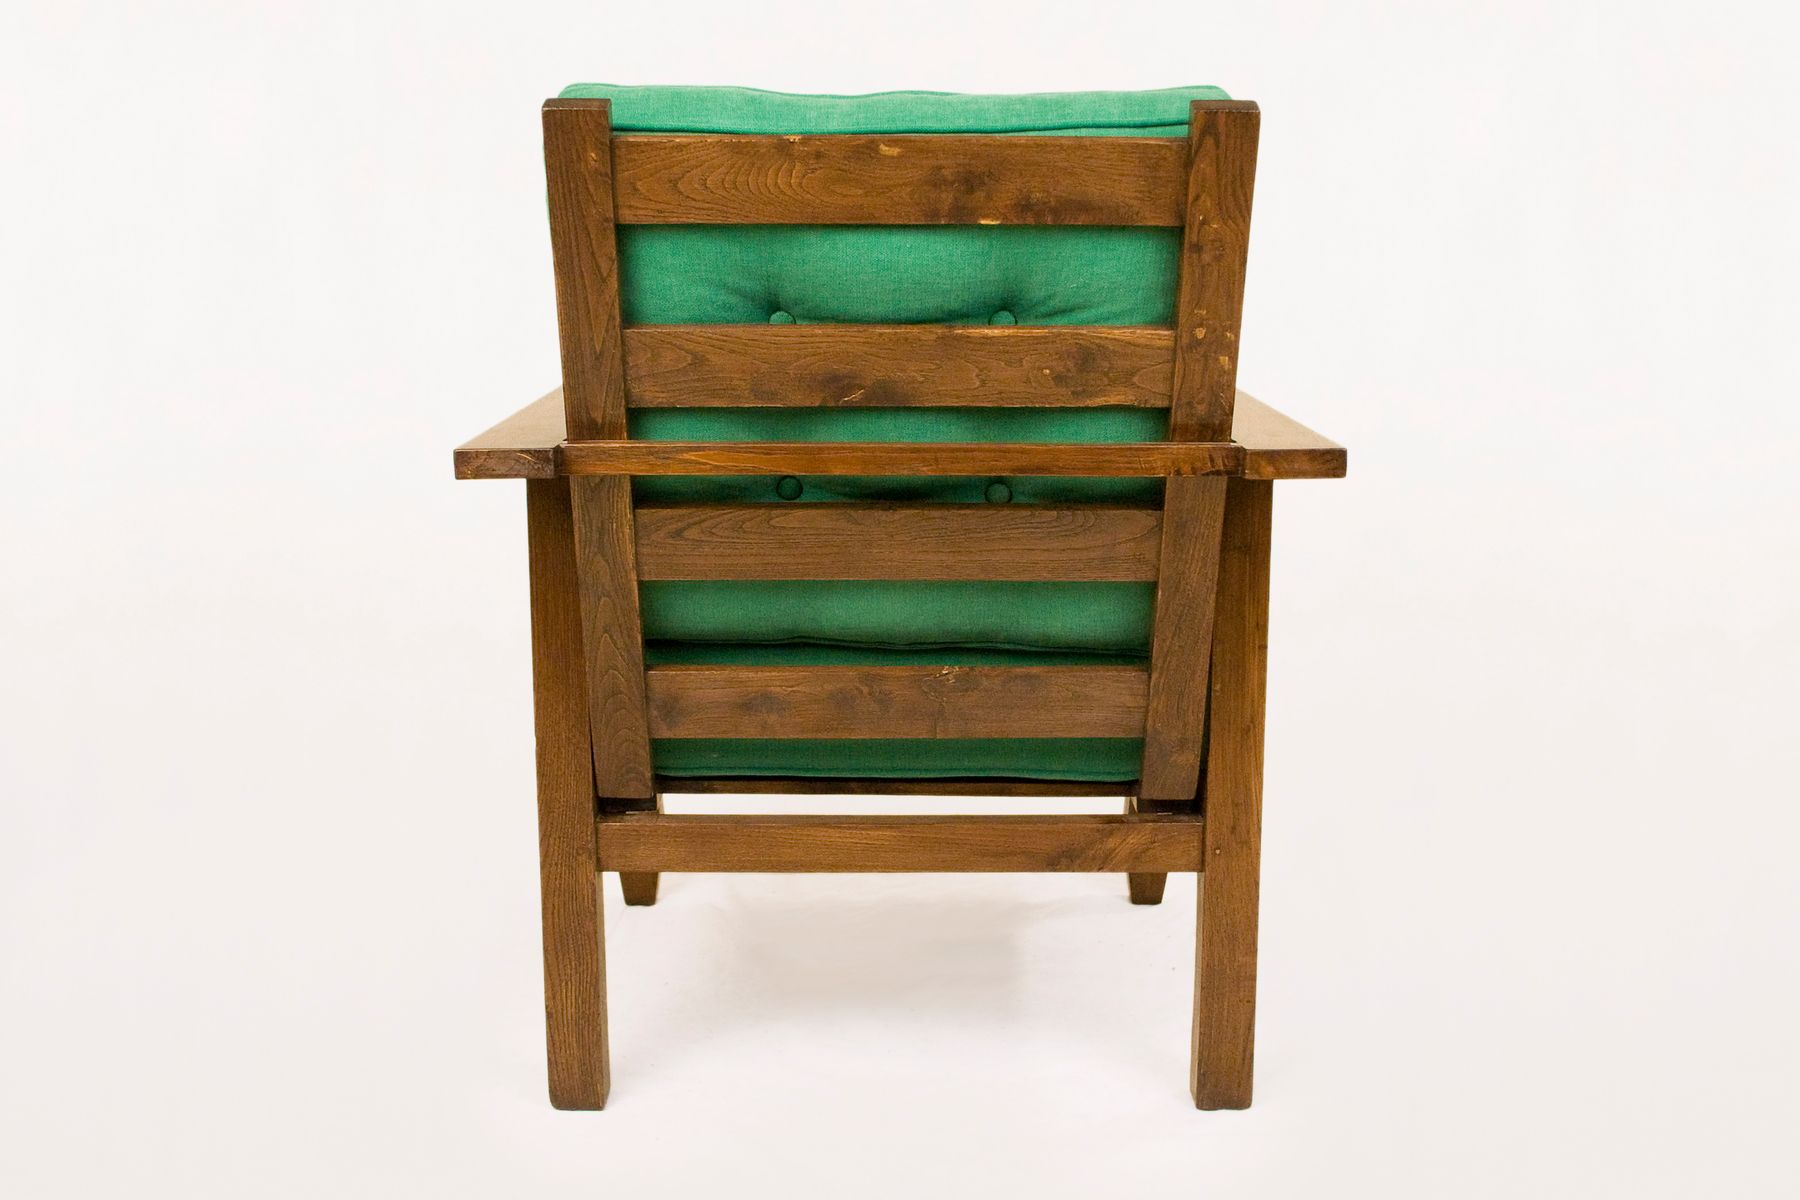 Vintage Wood And Green Arm Chairs By William Morris S Set Of - William morris chairs